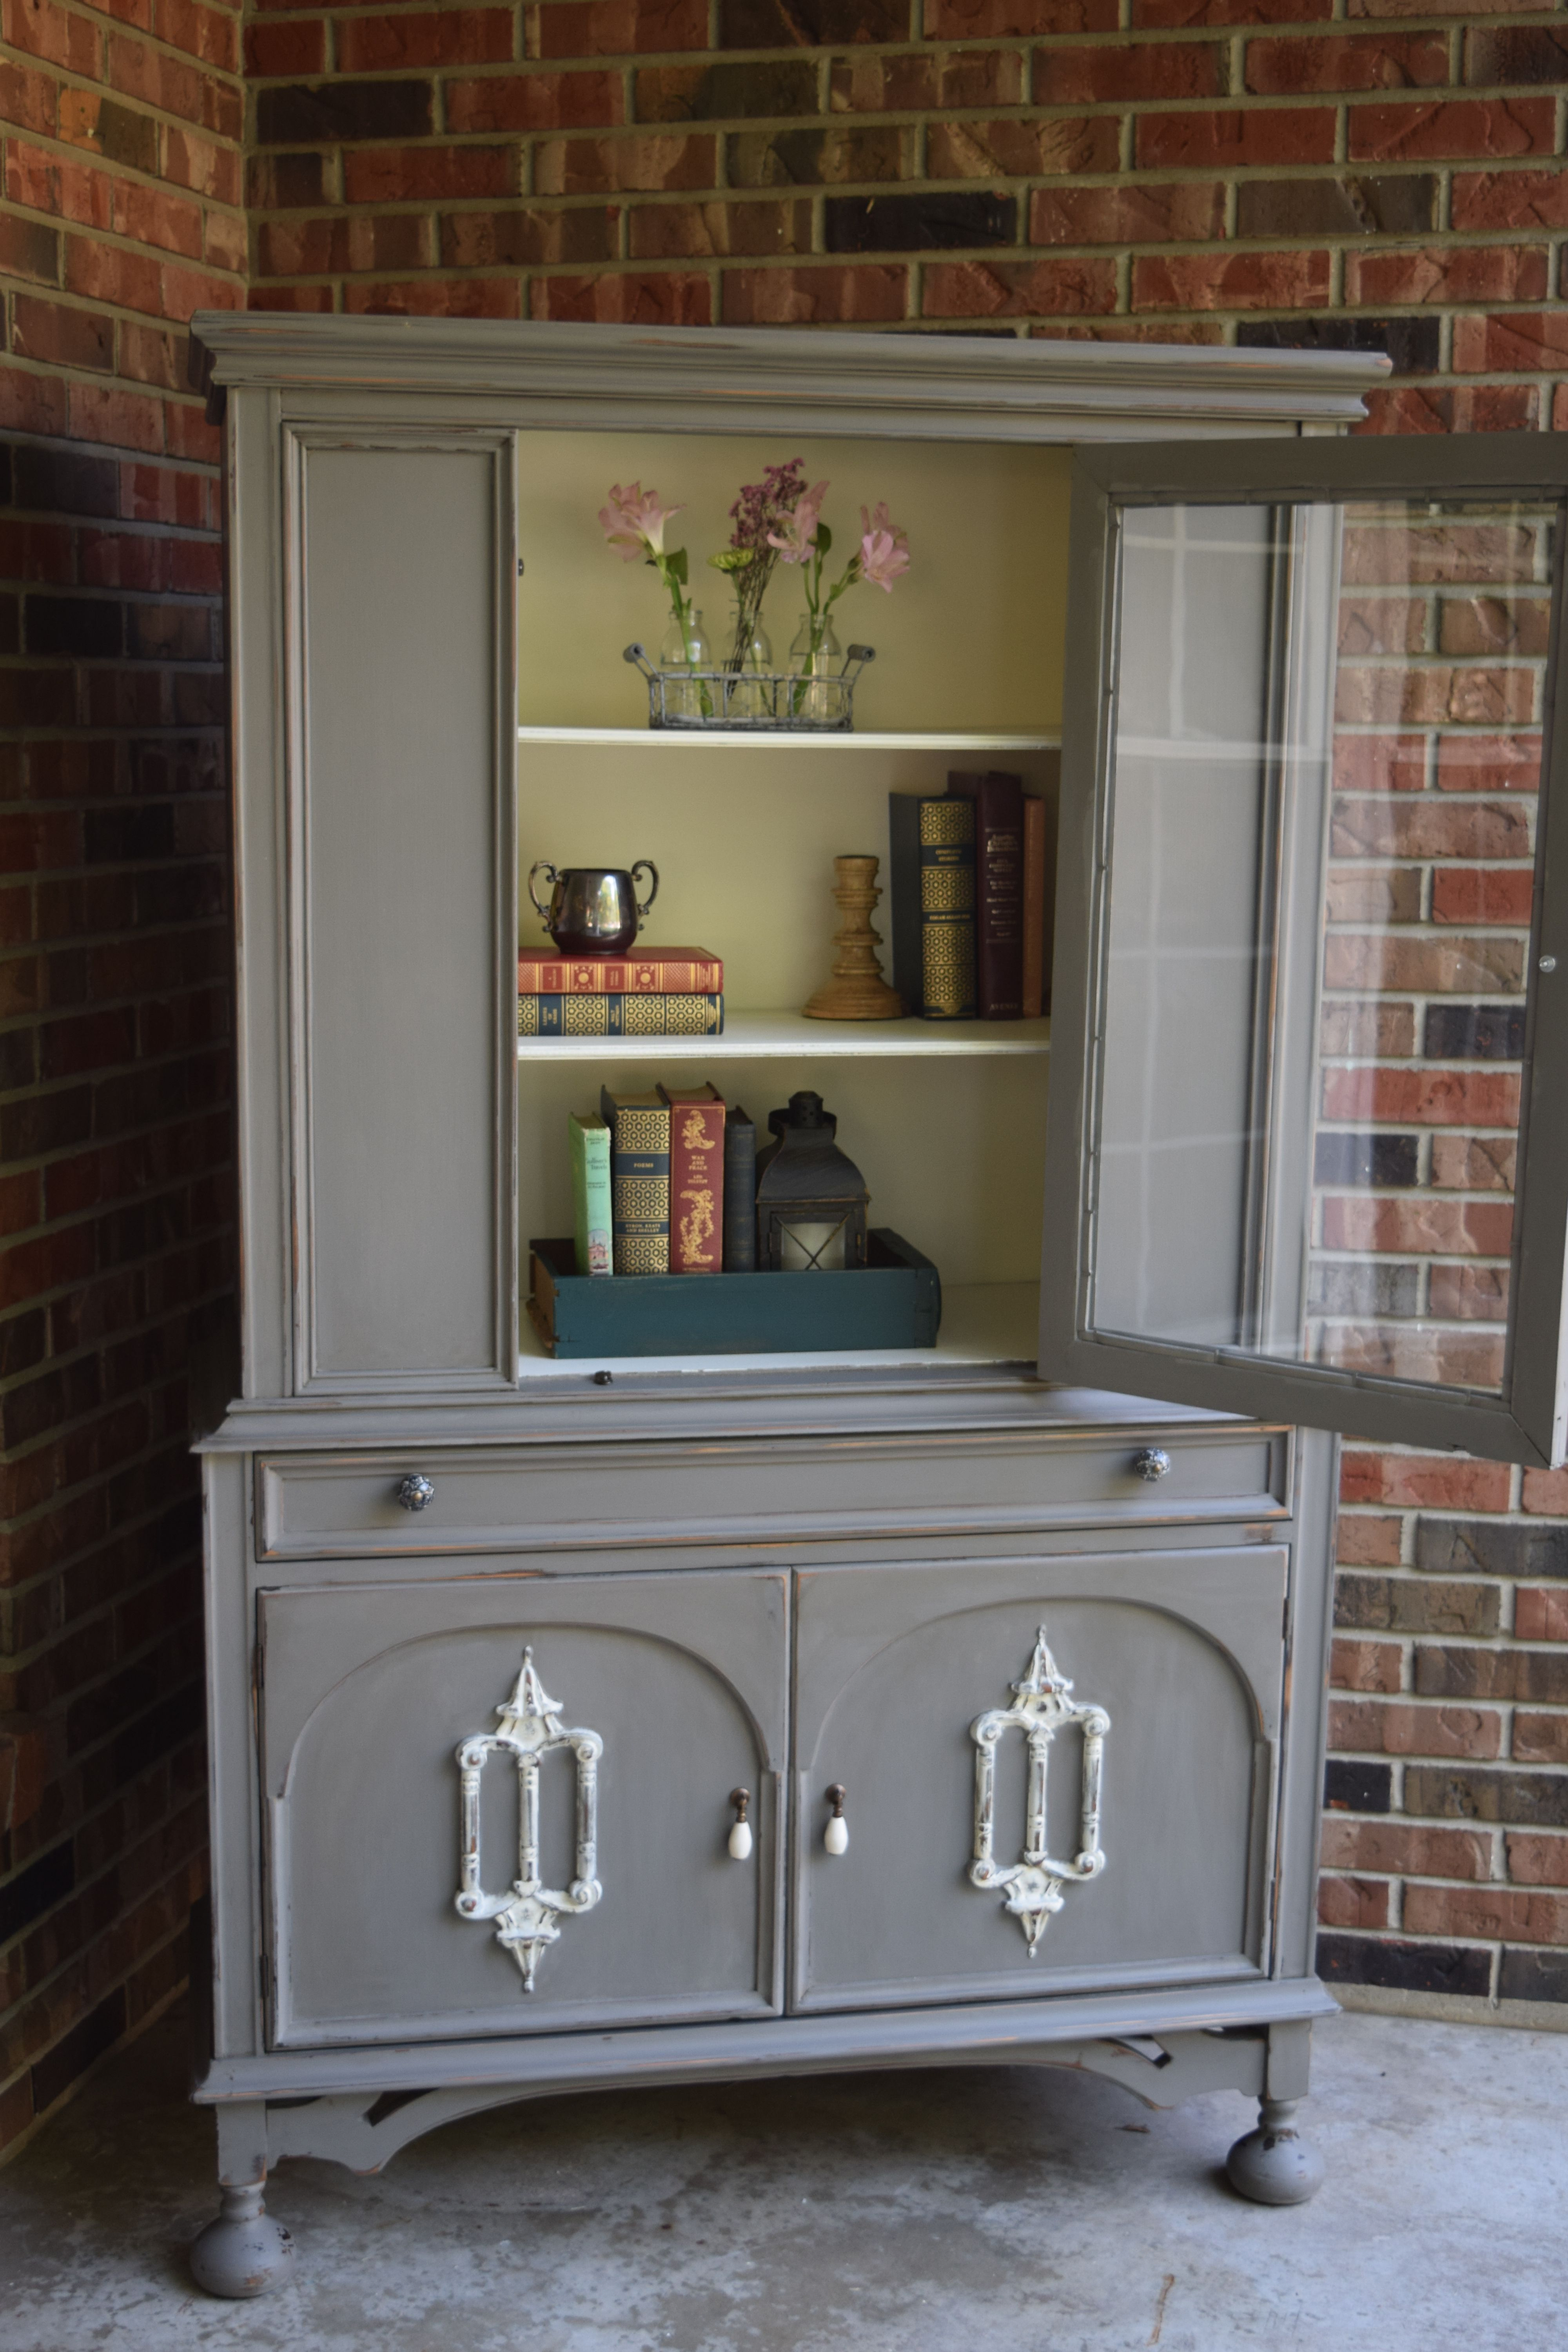 hutch cabinet shelves style cent having painted white section with the country bottom upper product stepback and american antique shelf drawers casepiece a